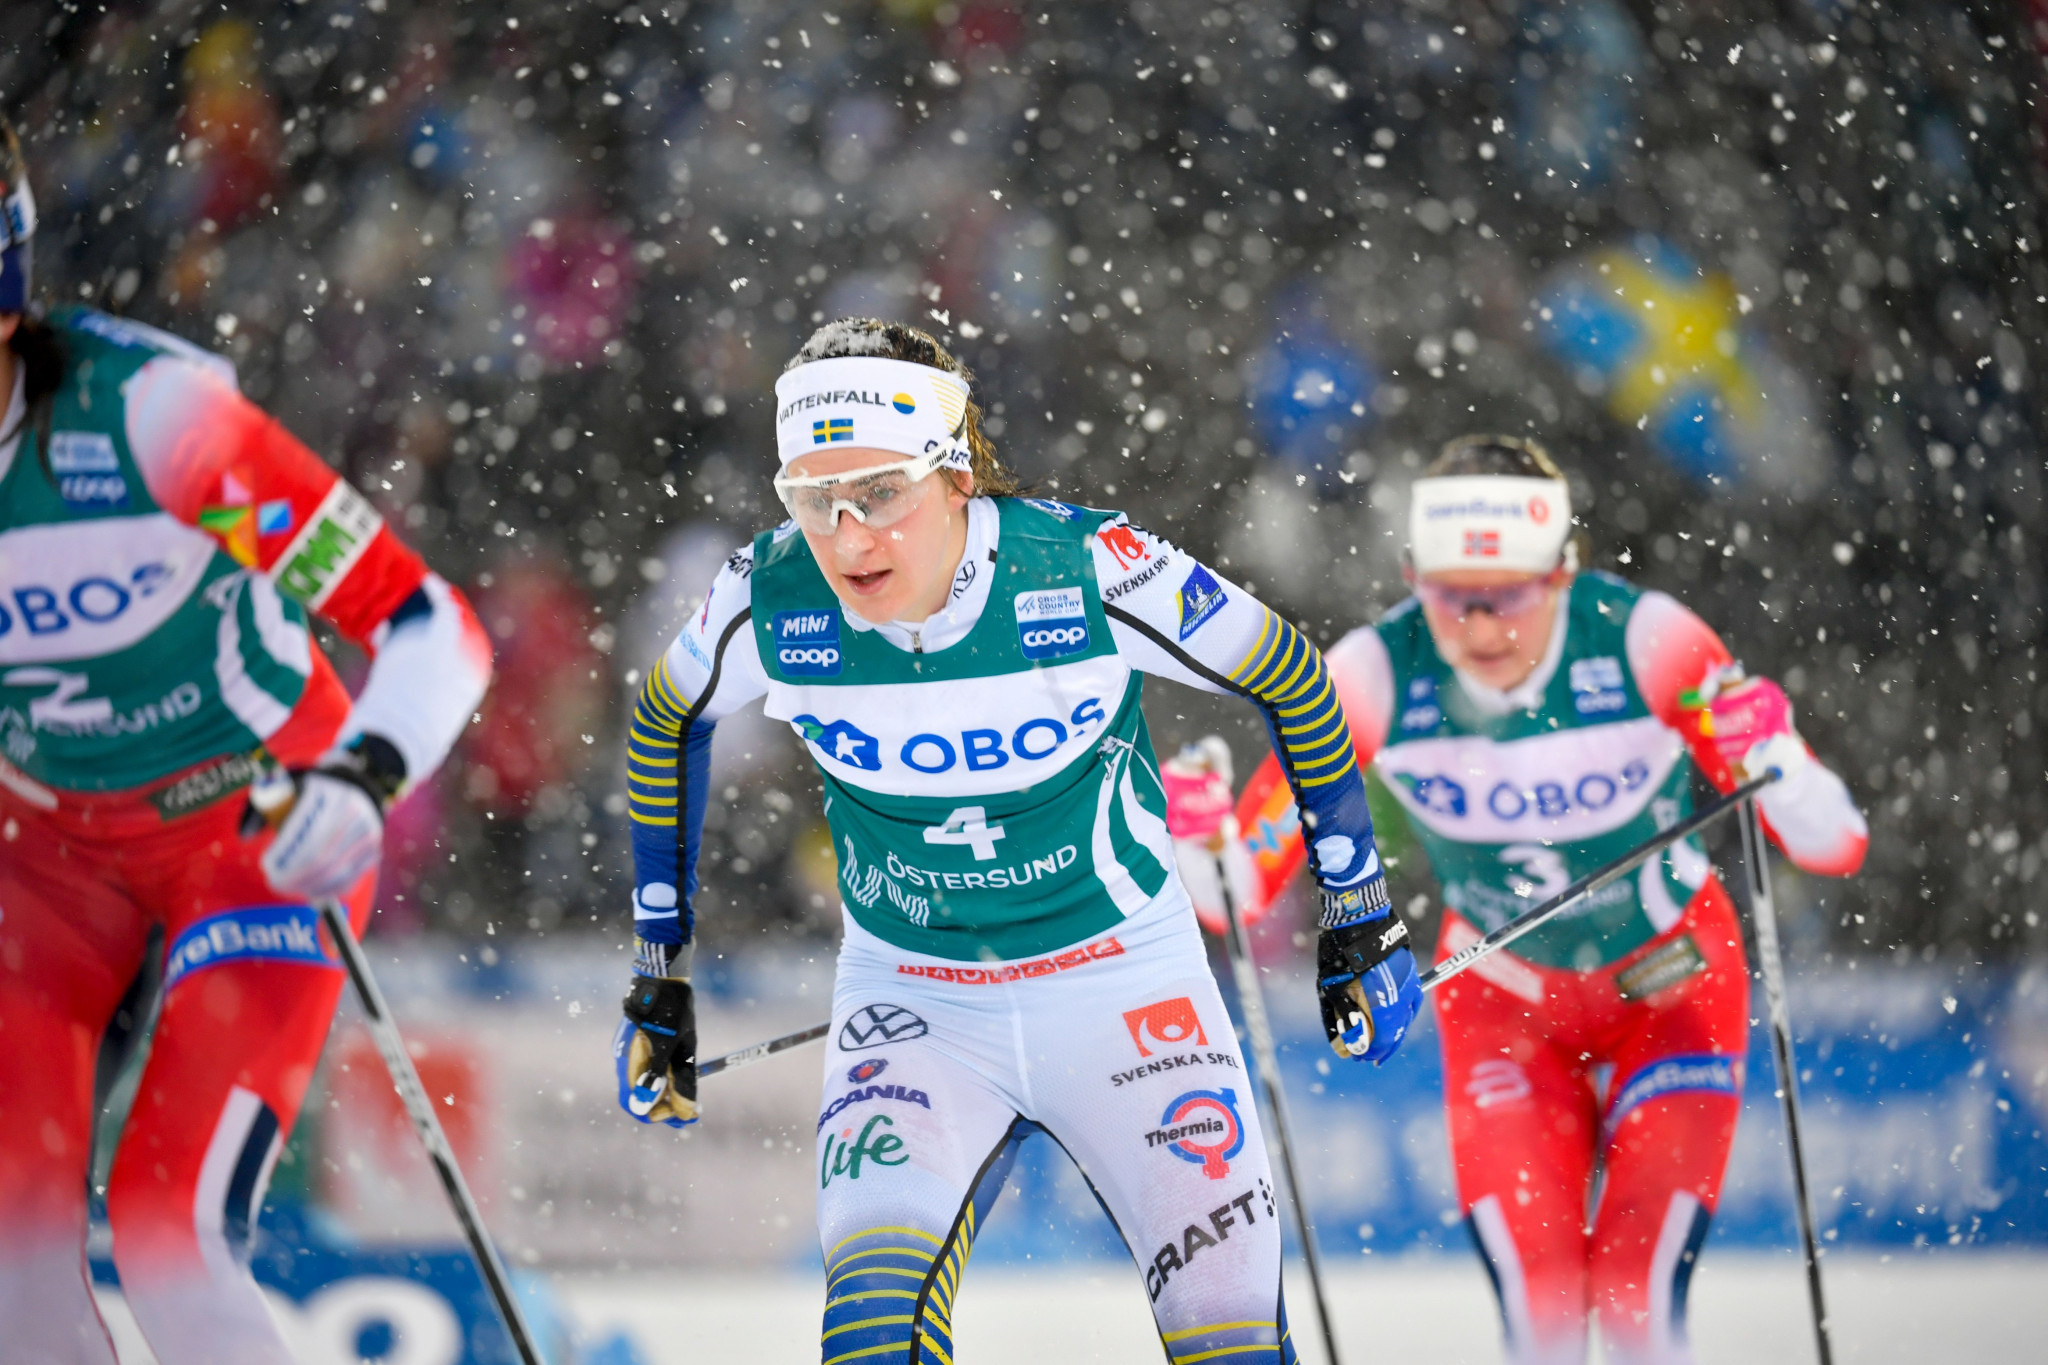 Andersson and Ardashev earn under-23 gold at Nordic Junior and Under-23 World Ski Championships